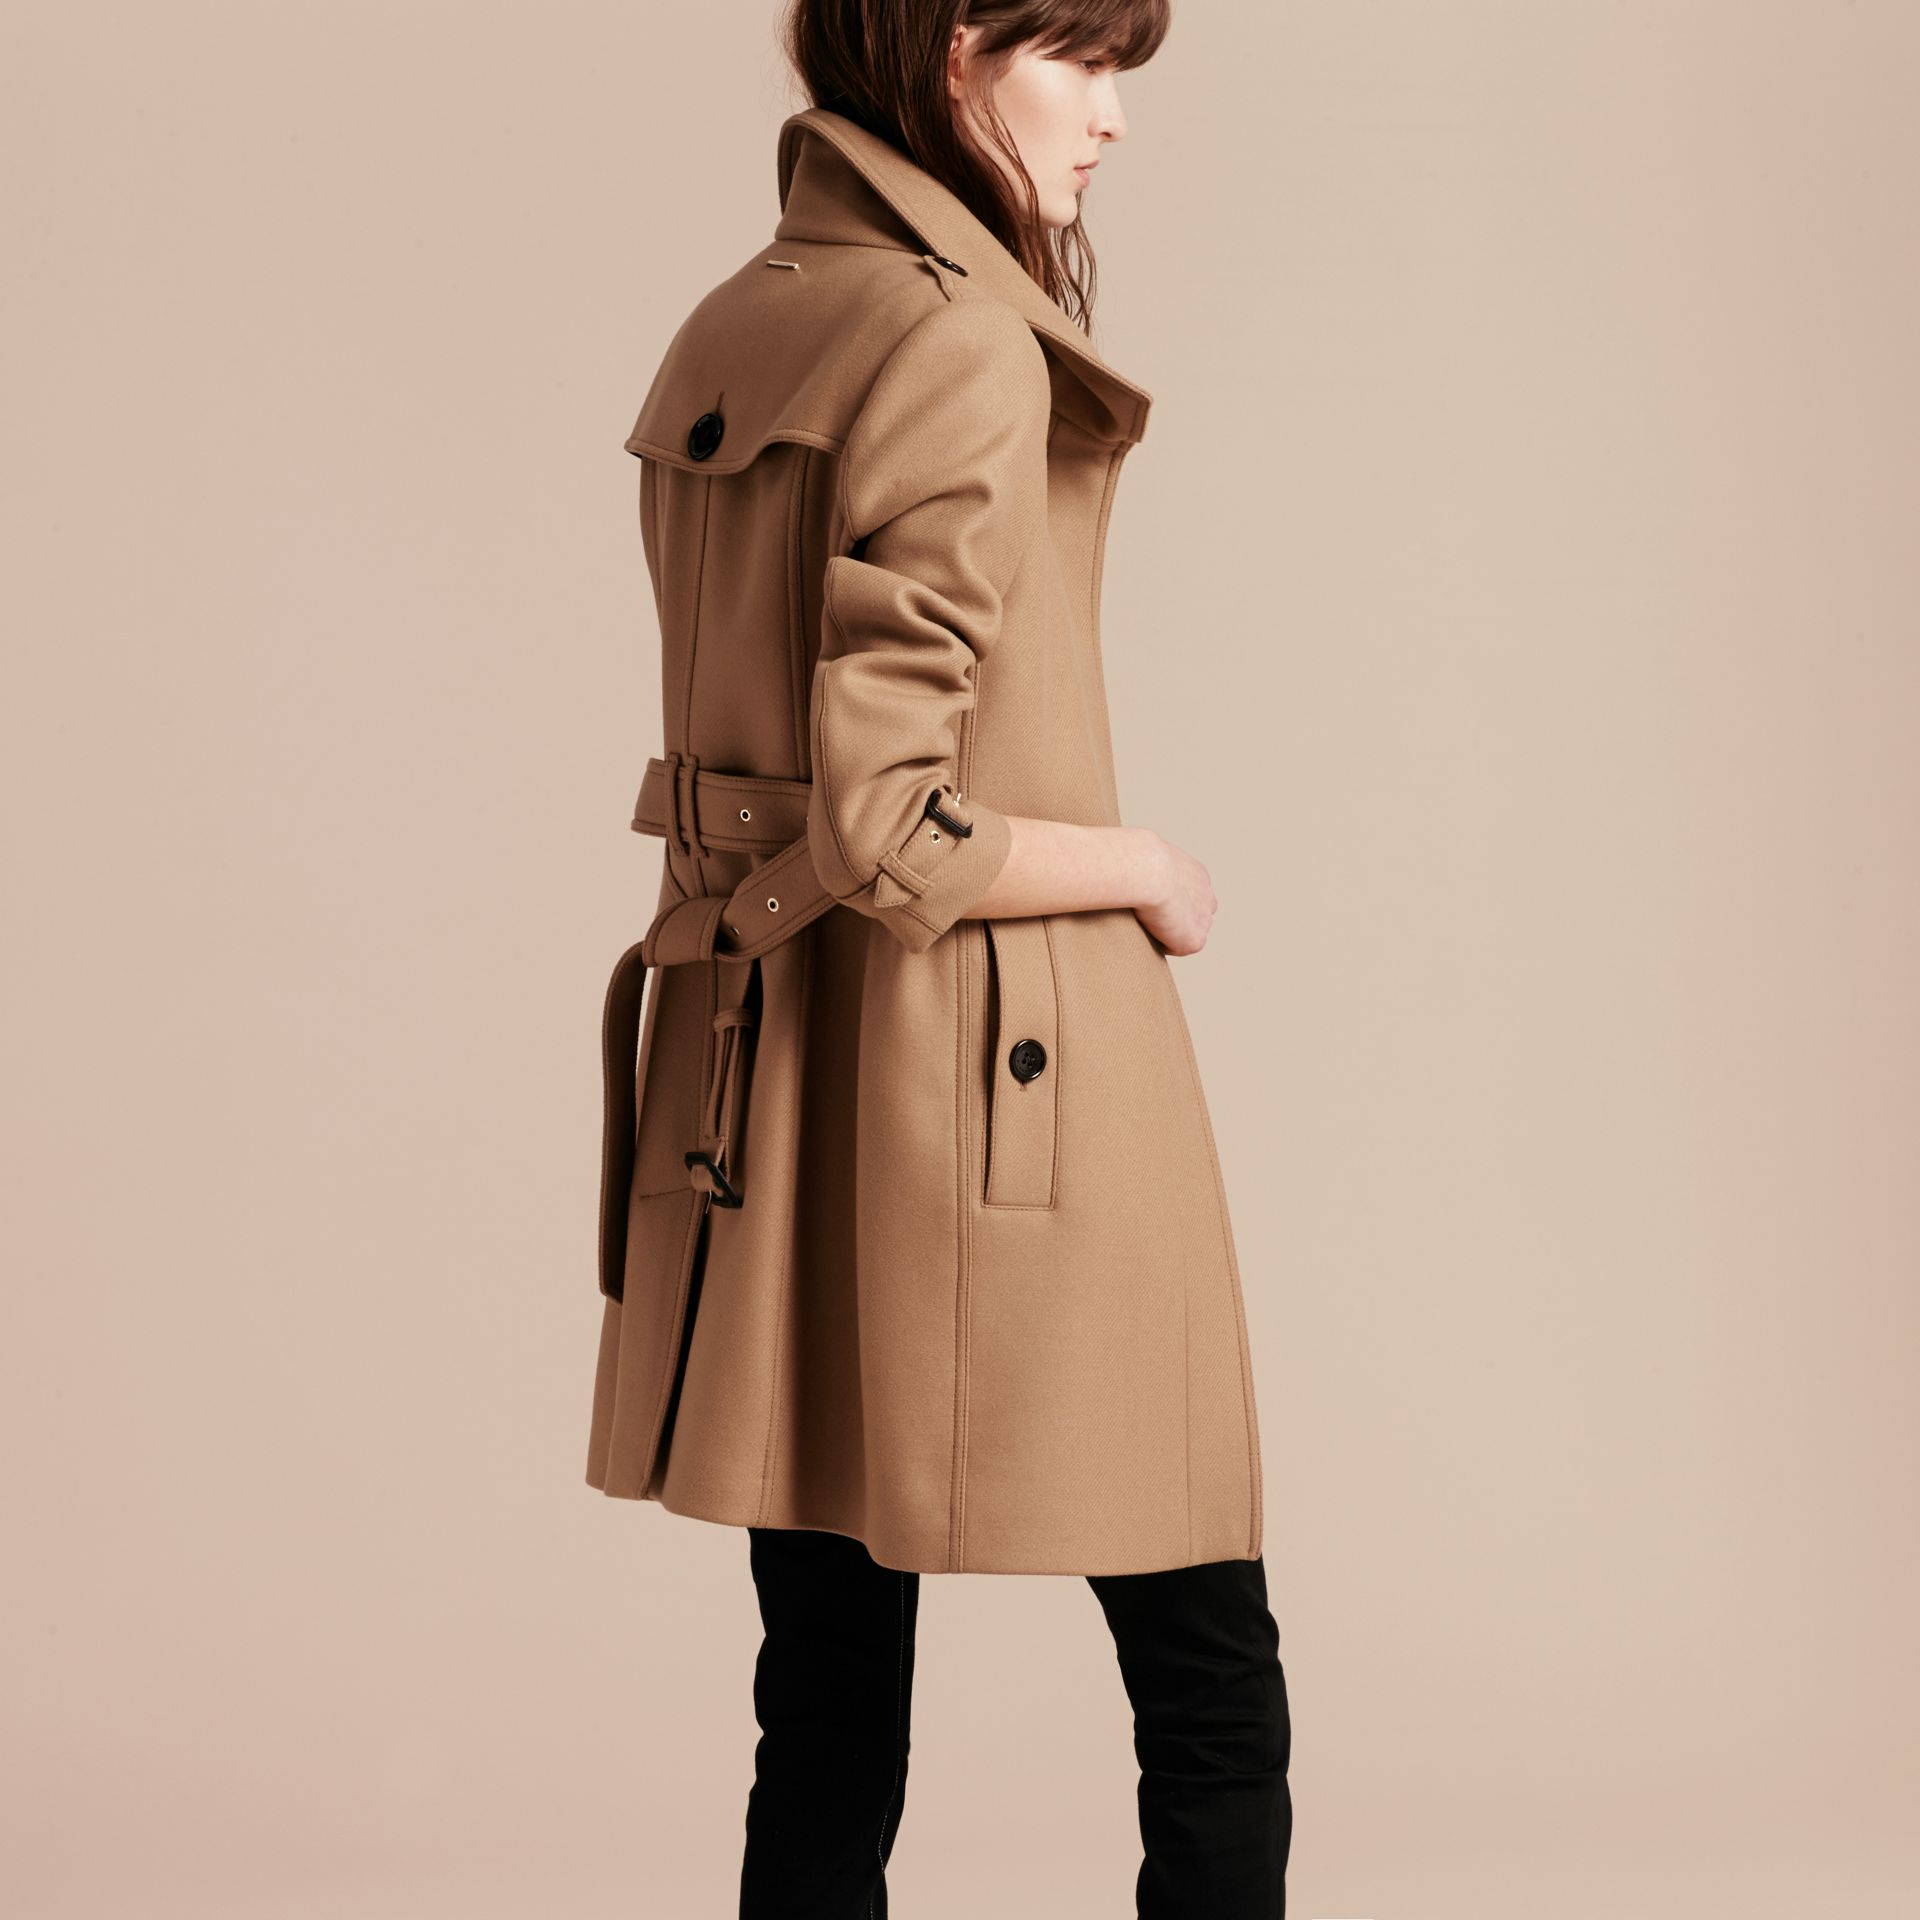 Manteau en laine technique et cachemire avec col entonnoir Camel - photo de la galerie 3